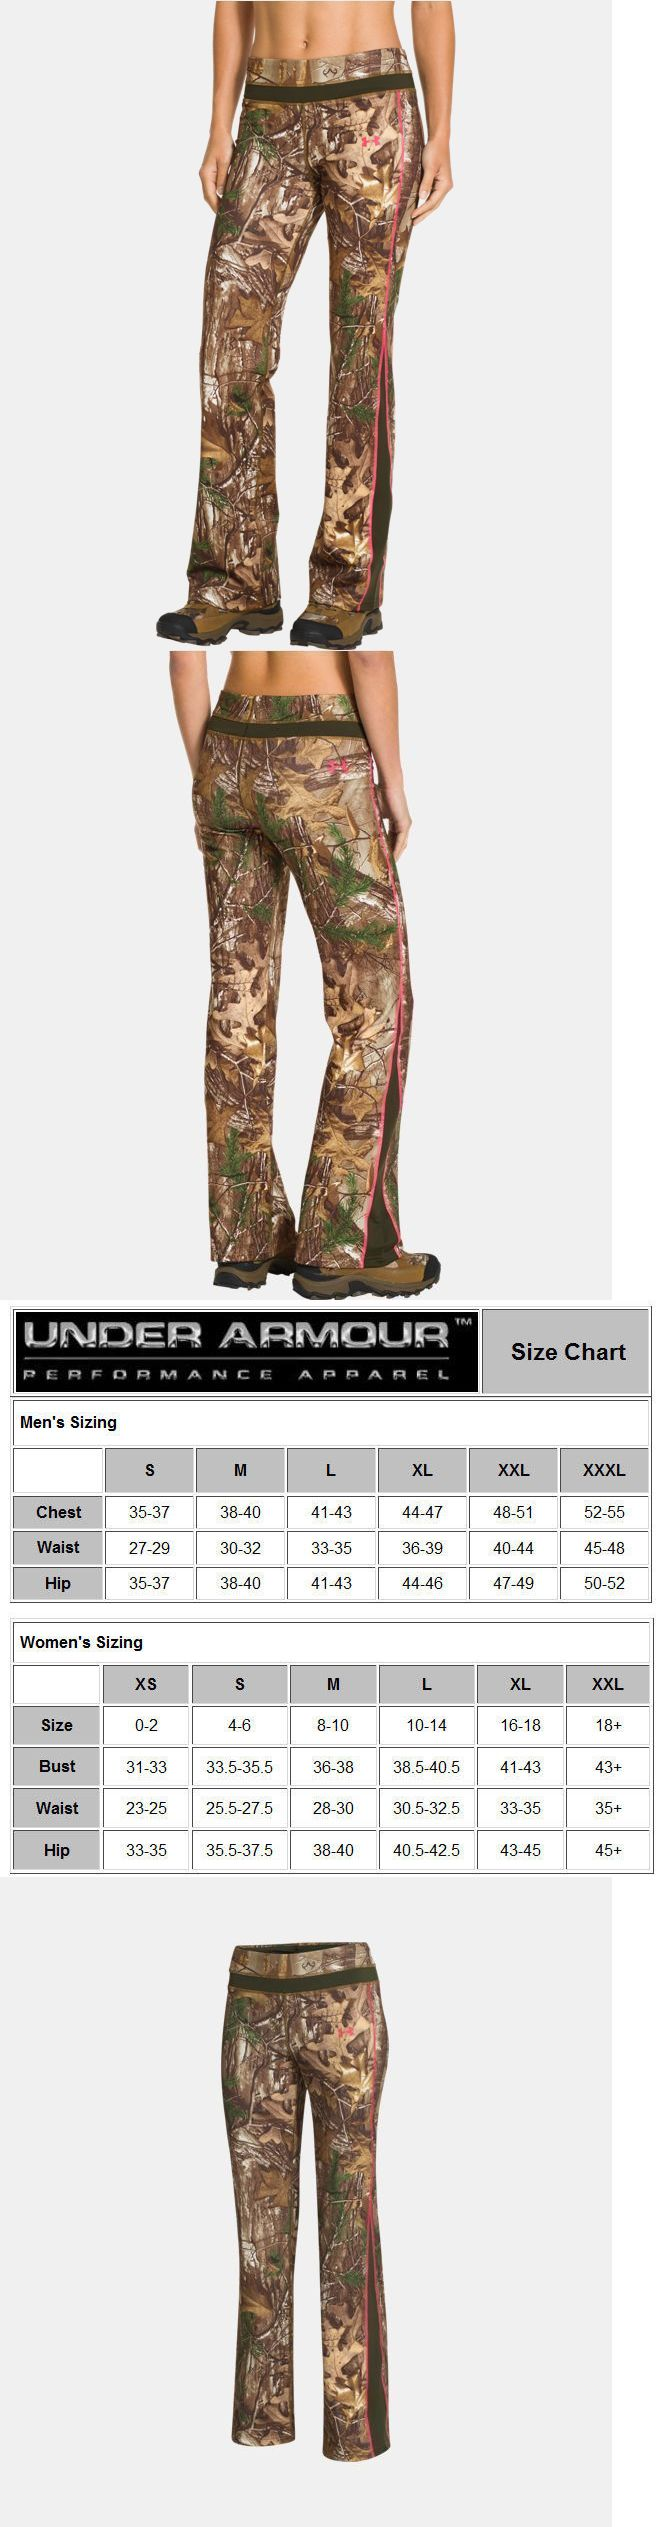 Athletic Apparel 137085: Under Armour Women S Cold Gear Infrared Evo Hunting Pants Nwt Size: Medium -> BUY IT NOW ONLY: $48.98 on eBay!